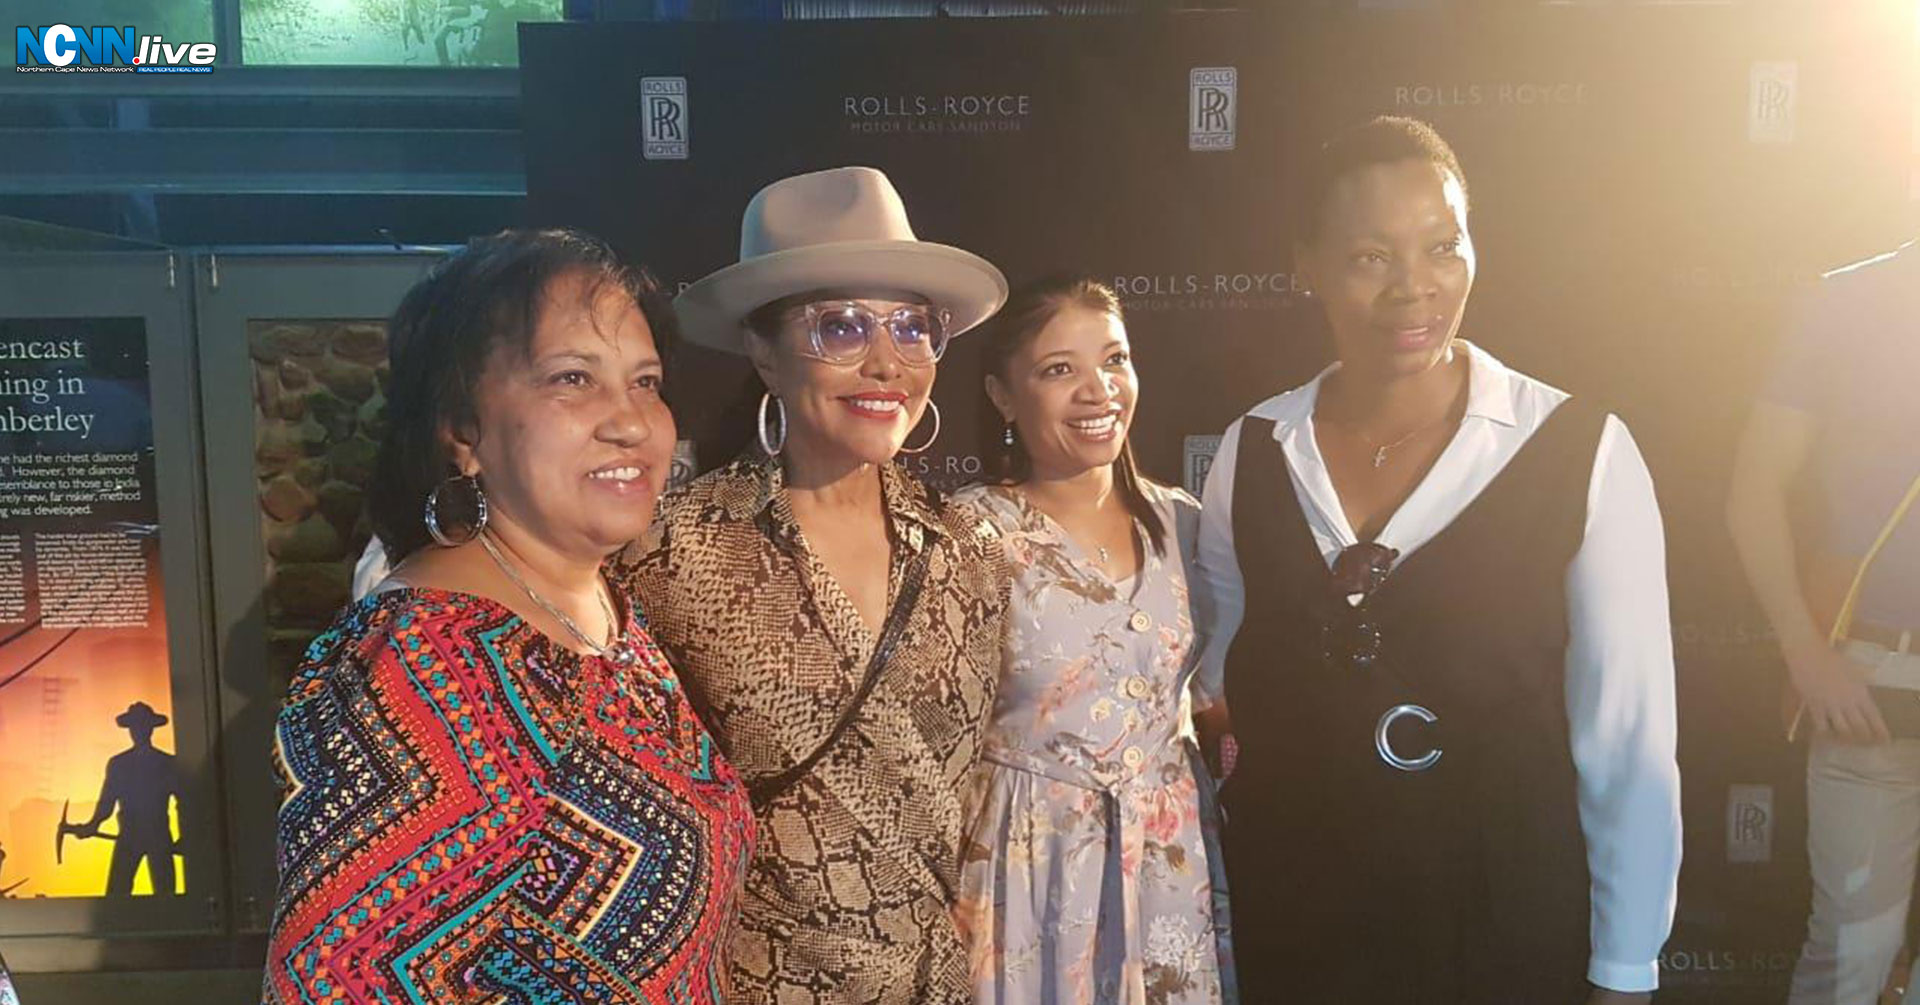 HOLLYWOOD ACTRESS LYNN WHITFIELD IMPRESSED WITH NORTHERN CAPE TOURISM - NCNN.live